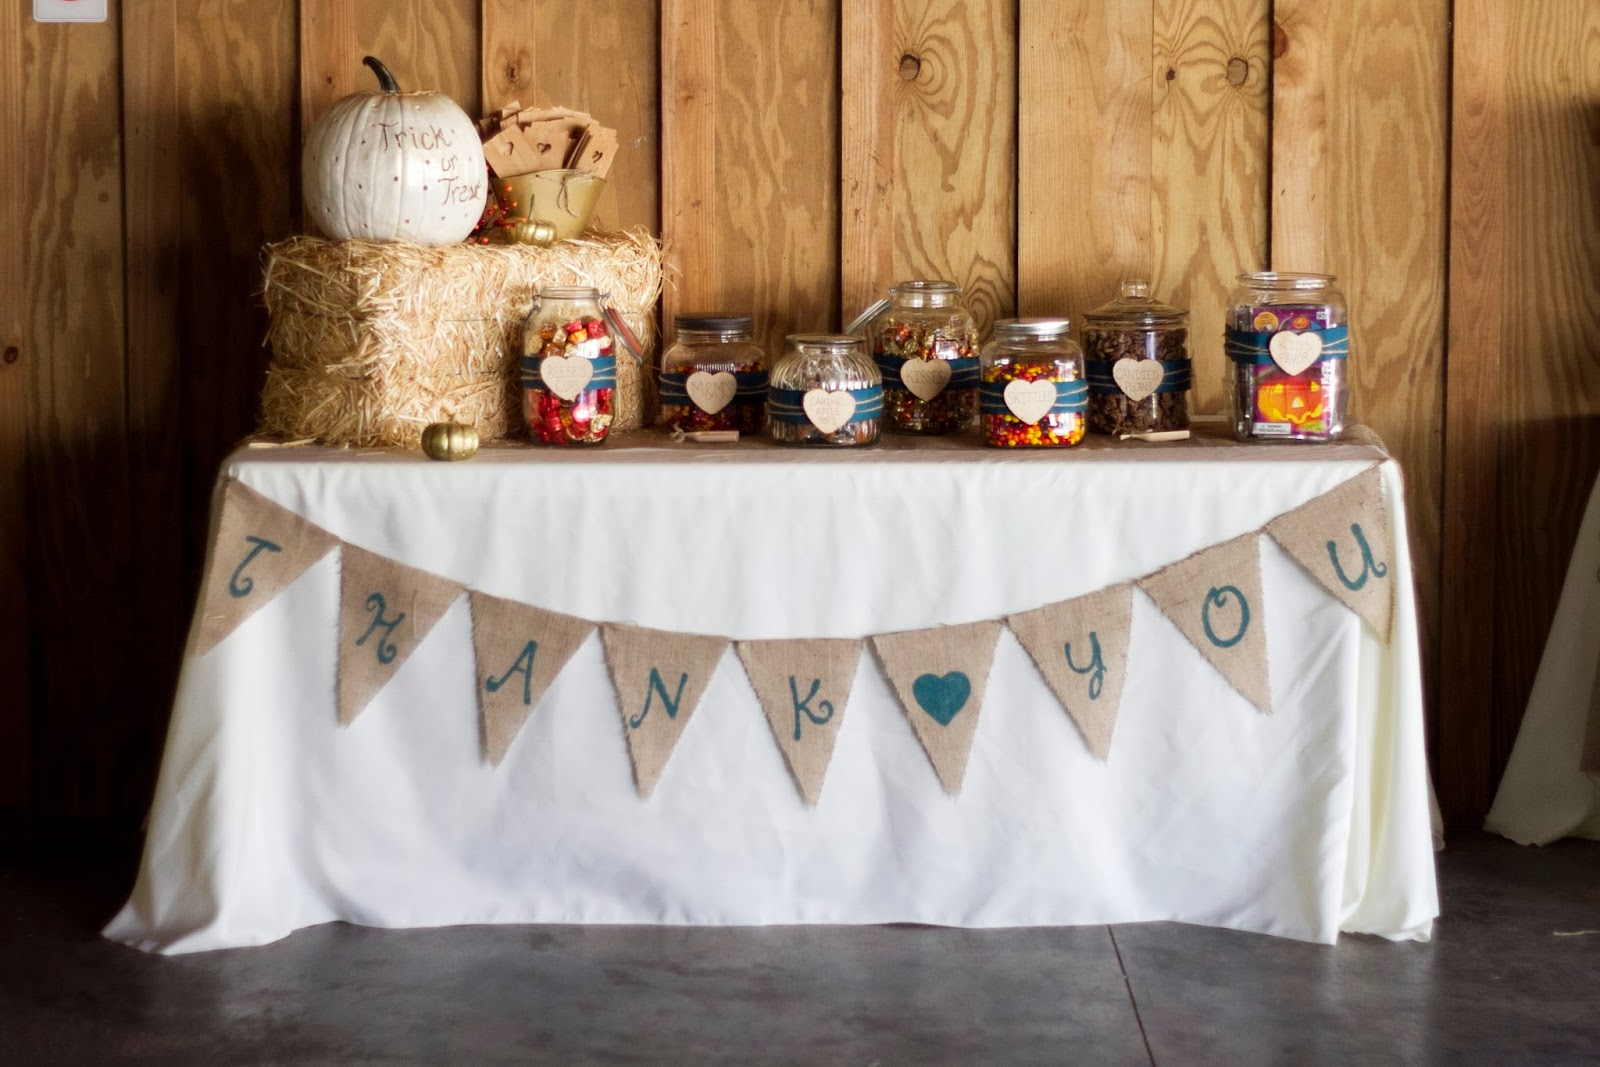 Fall wedding series 6 the candy buffet table create share repeat we decided to set up a candy buffet it was also around halloween so i thought it would be nice for everyone to get a chance to trick or treat watchthetrailerfo